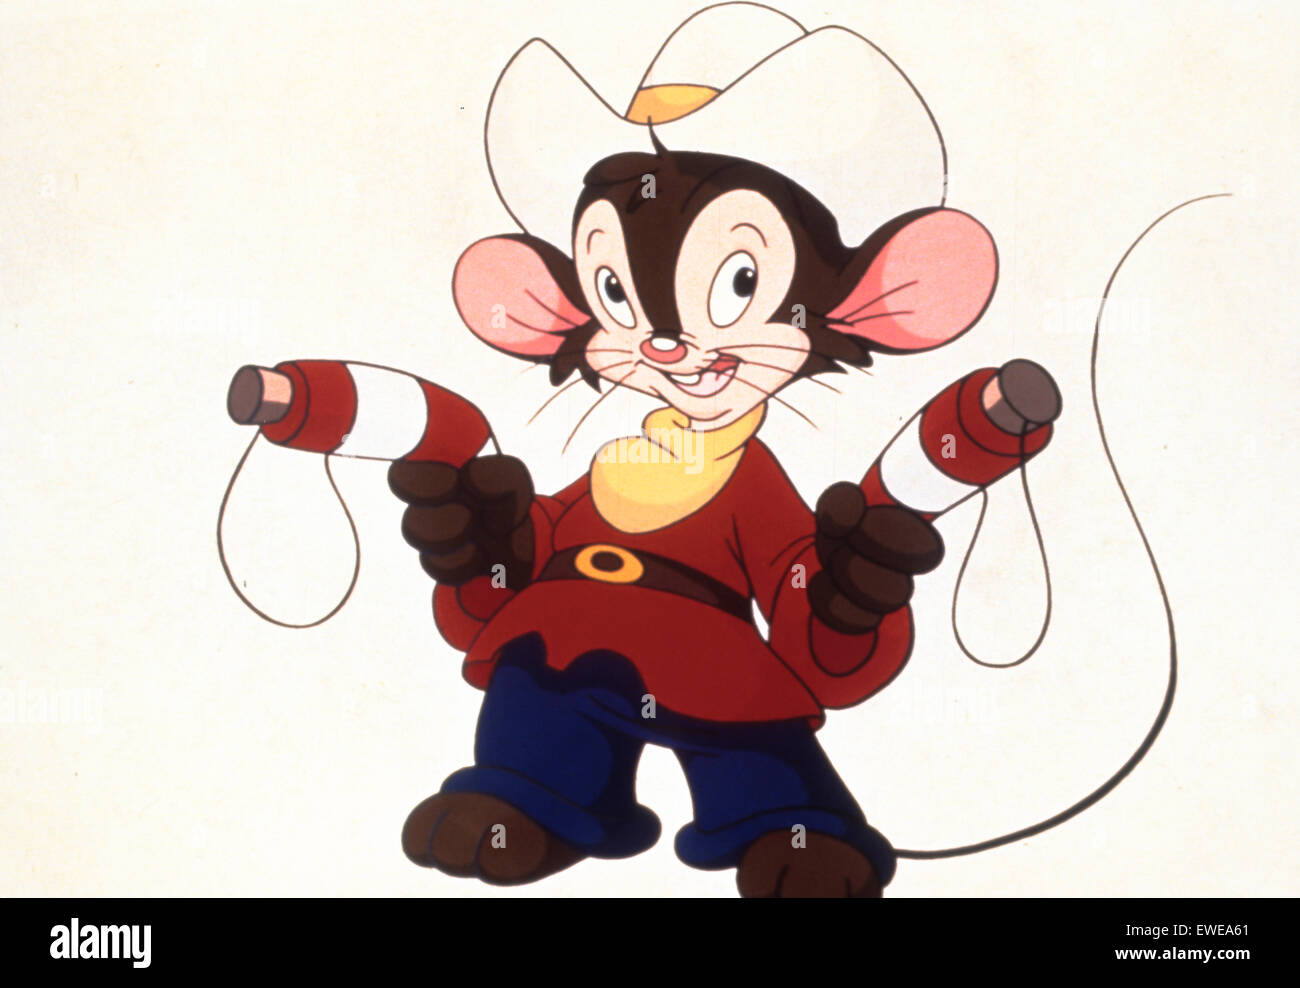 Un american tail: fievel goes west Imagen De Stock